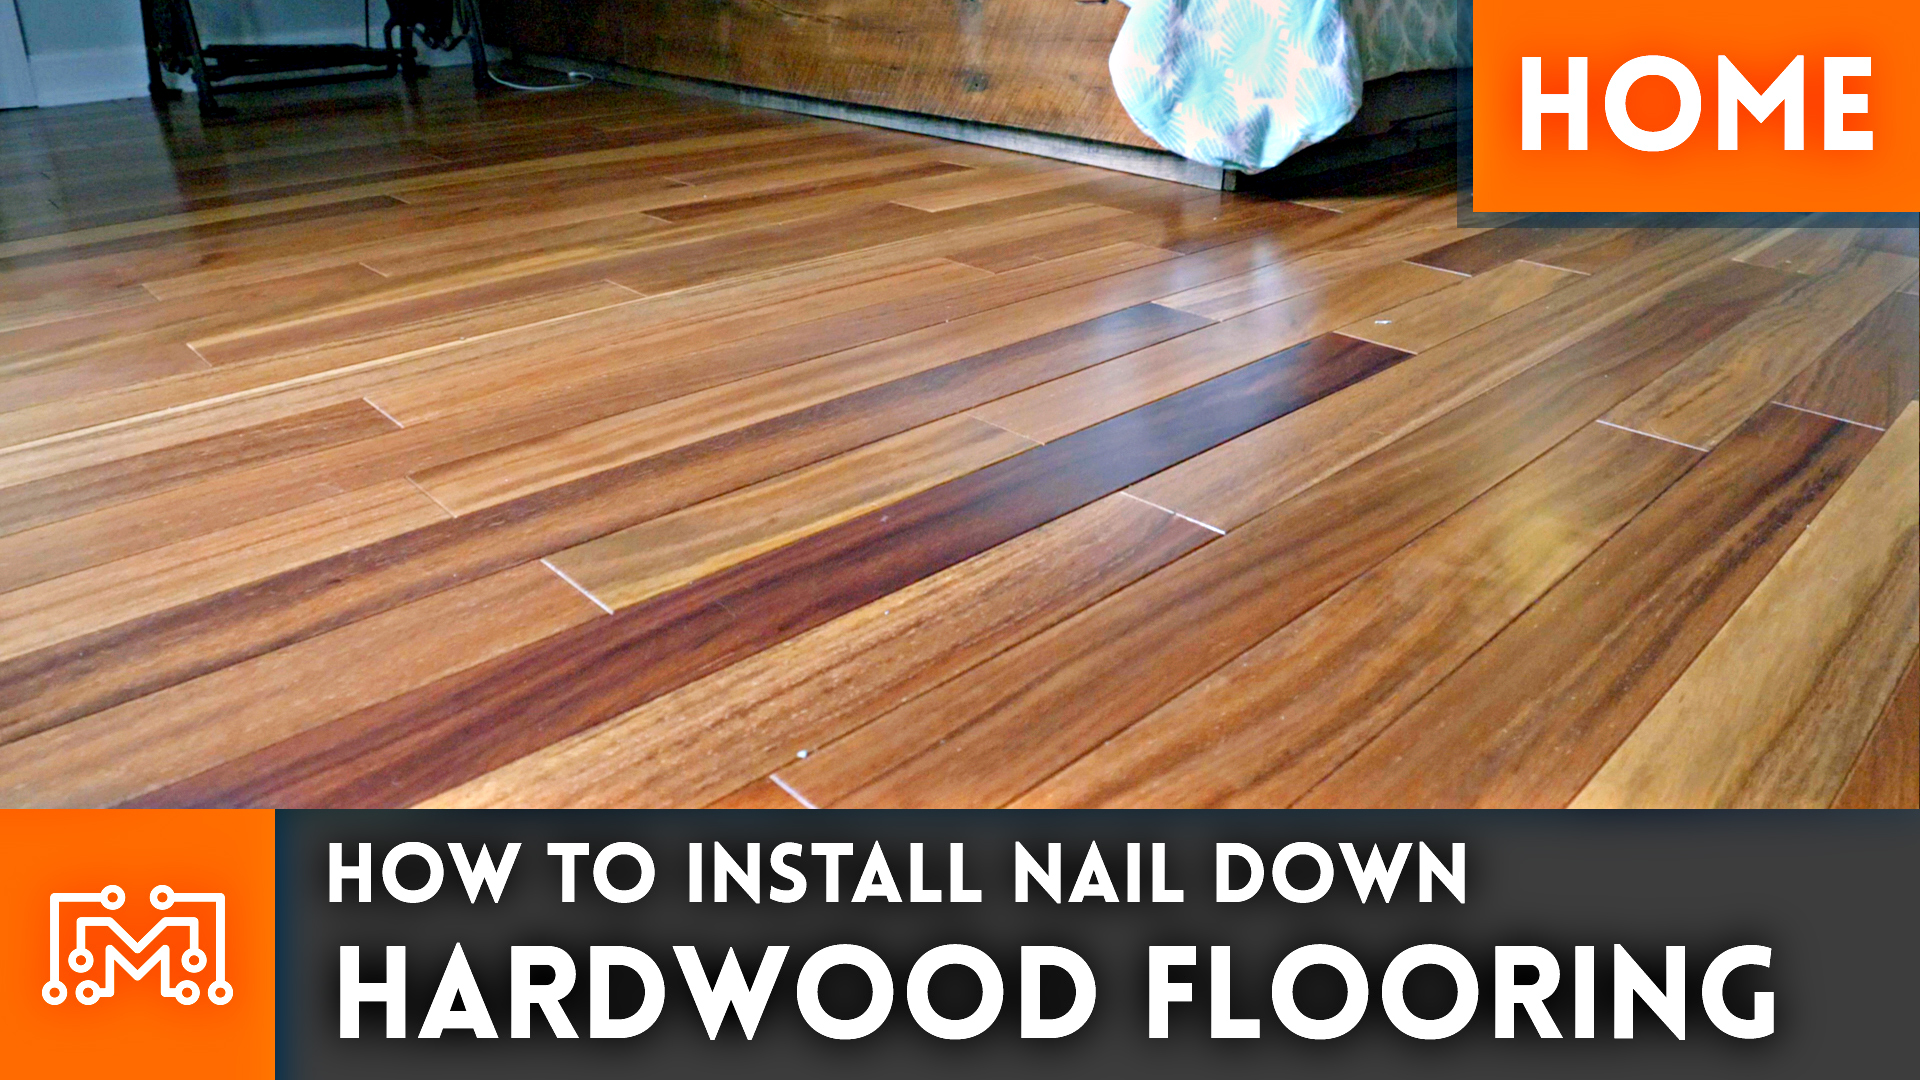 How to install nail down hardwood flooring home for How to install wood flooring